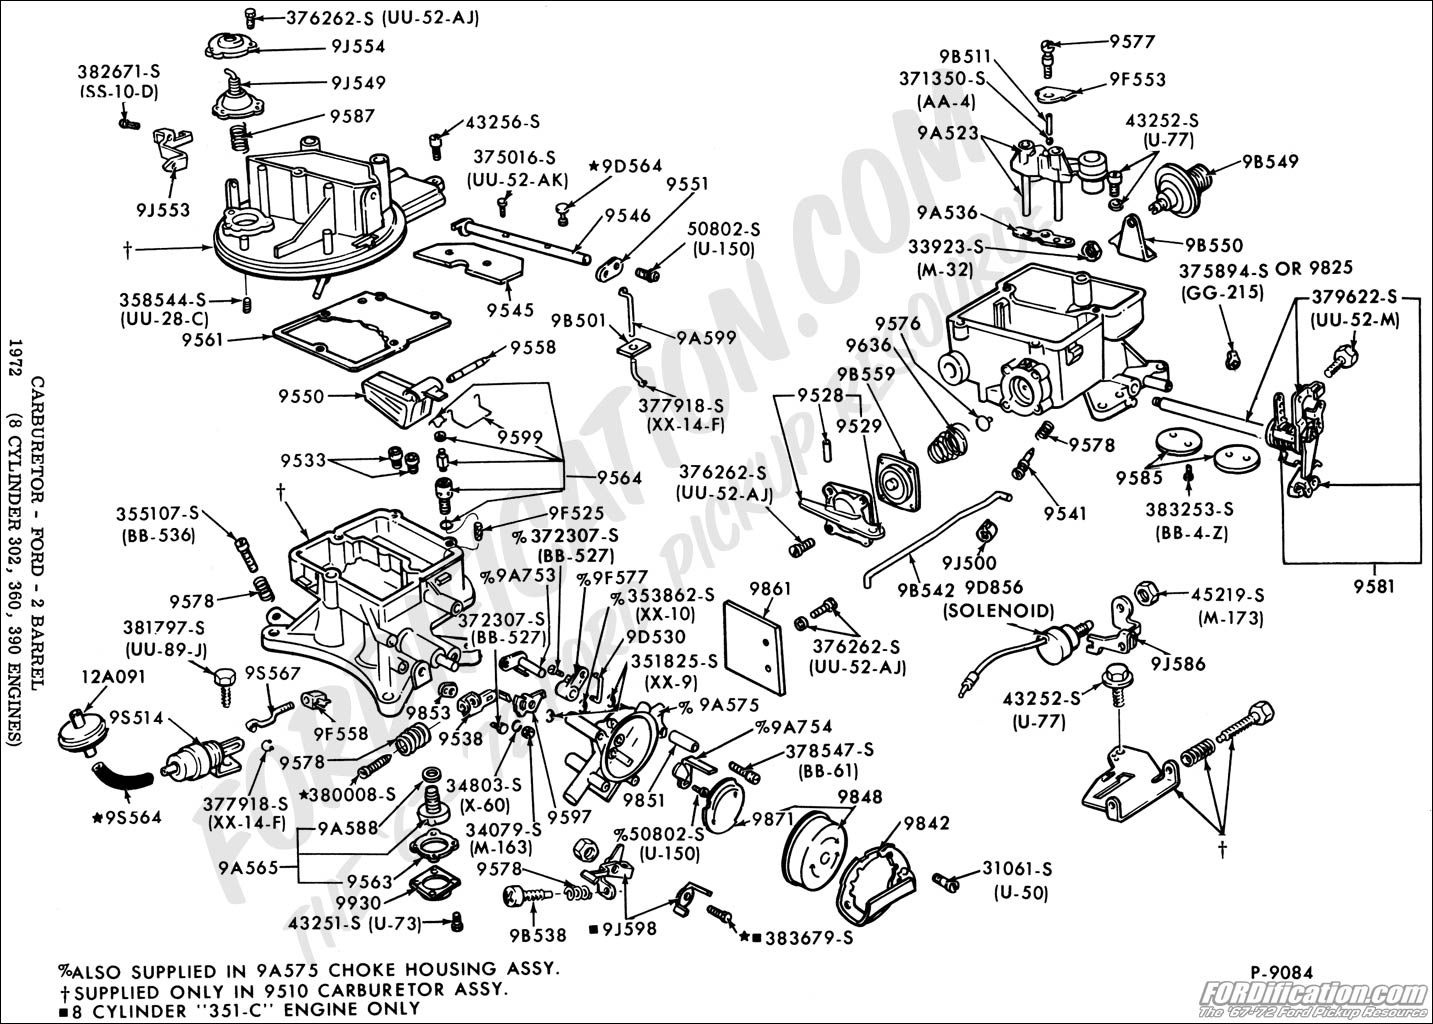 1964 lincoln continental wiring diagram google